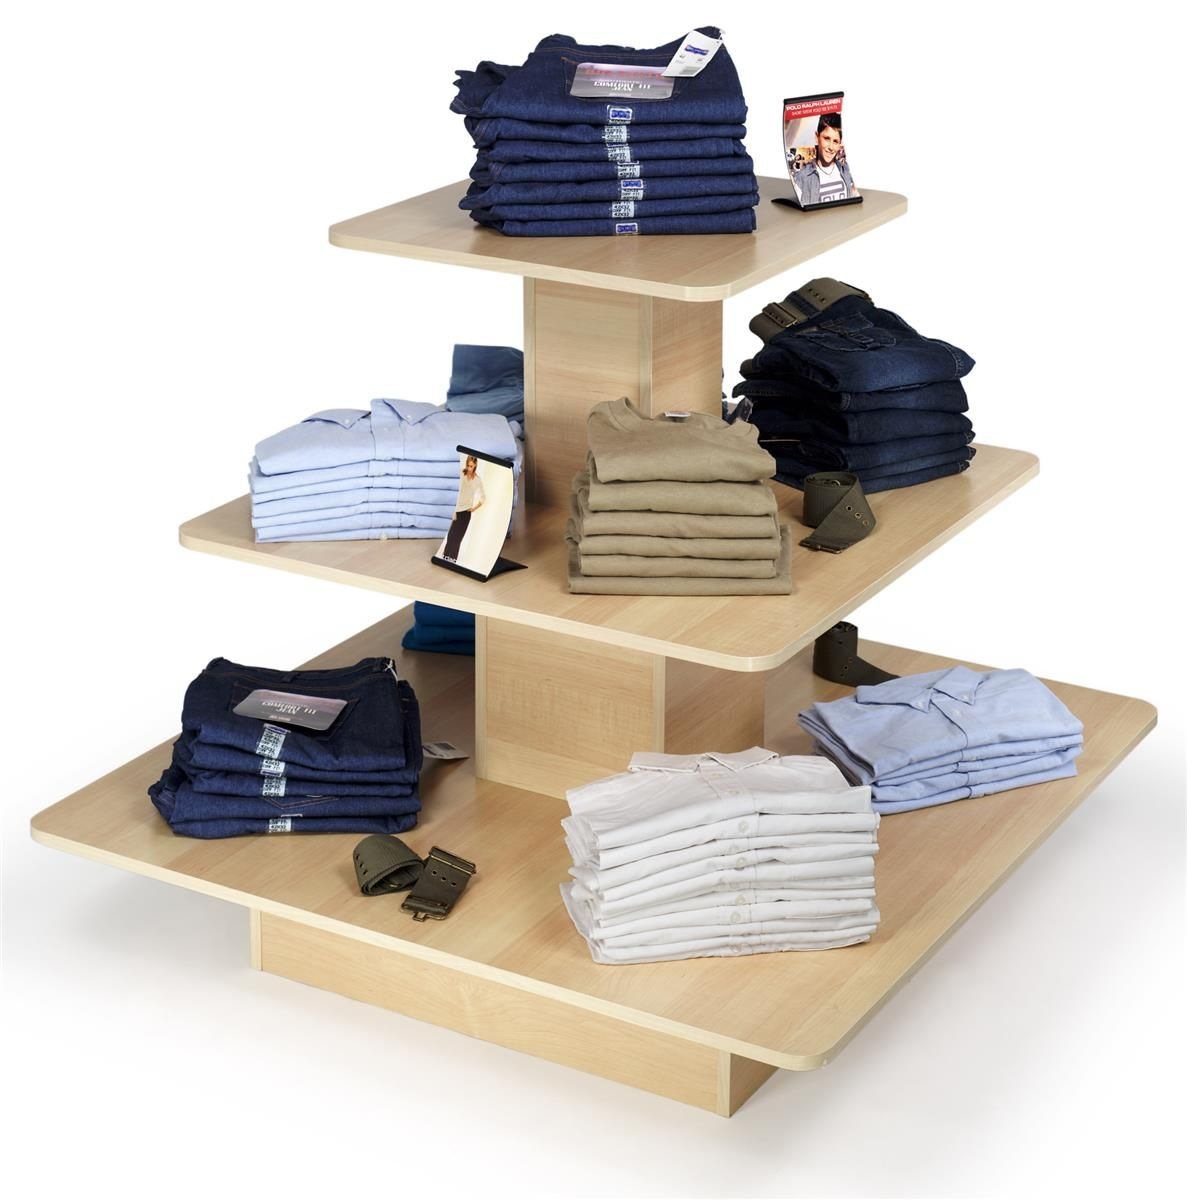 48 X 48 Tiered Display Table W 3 Shelves Square Maple Clothing Store Displays Retail Store Interior Kids Clothing Store Design